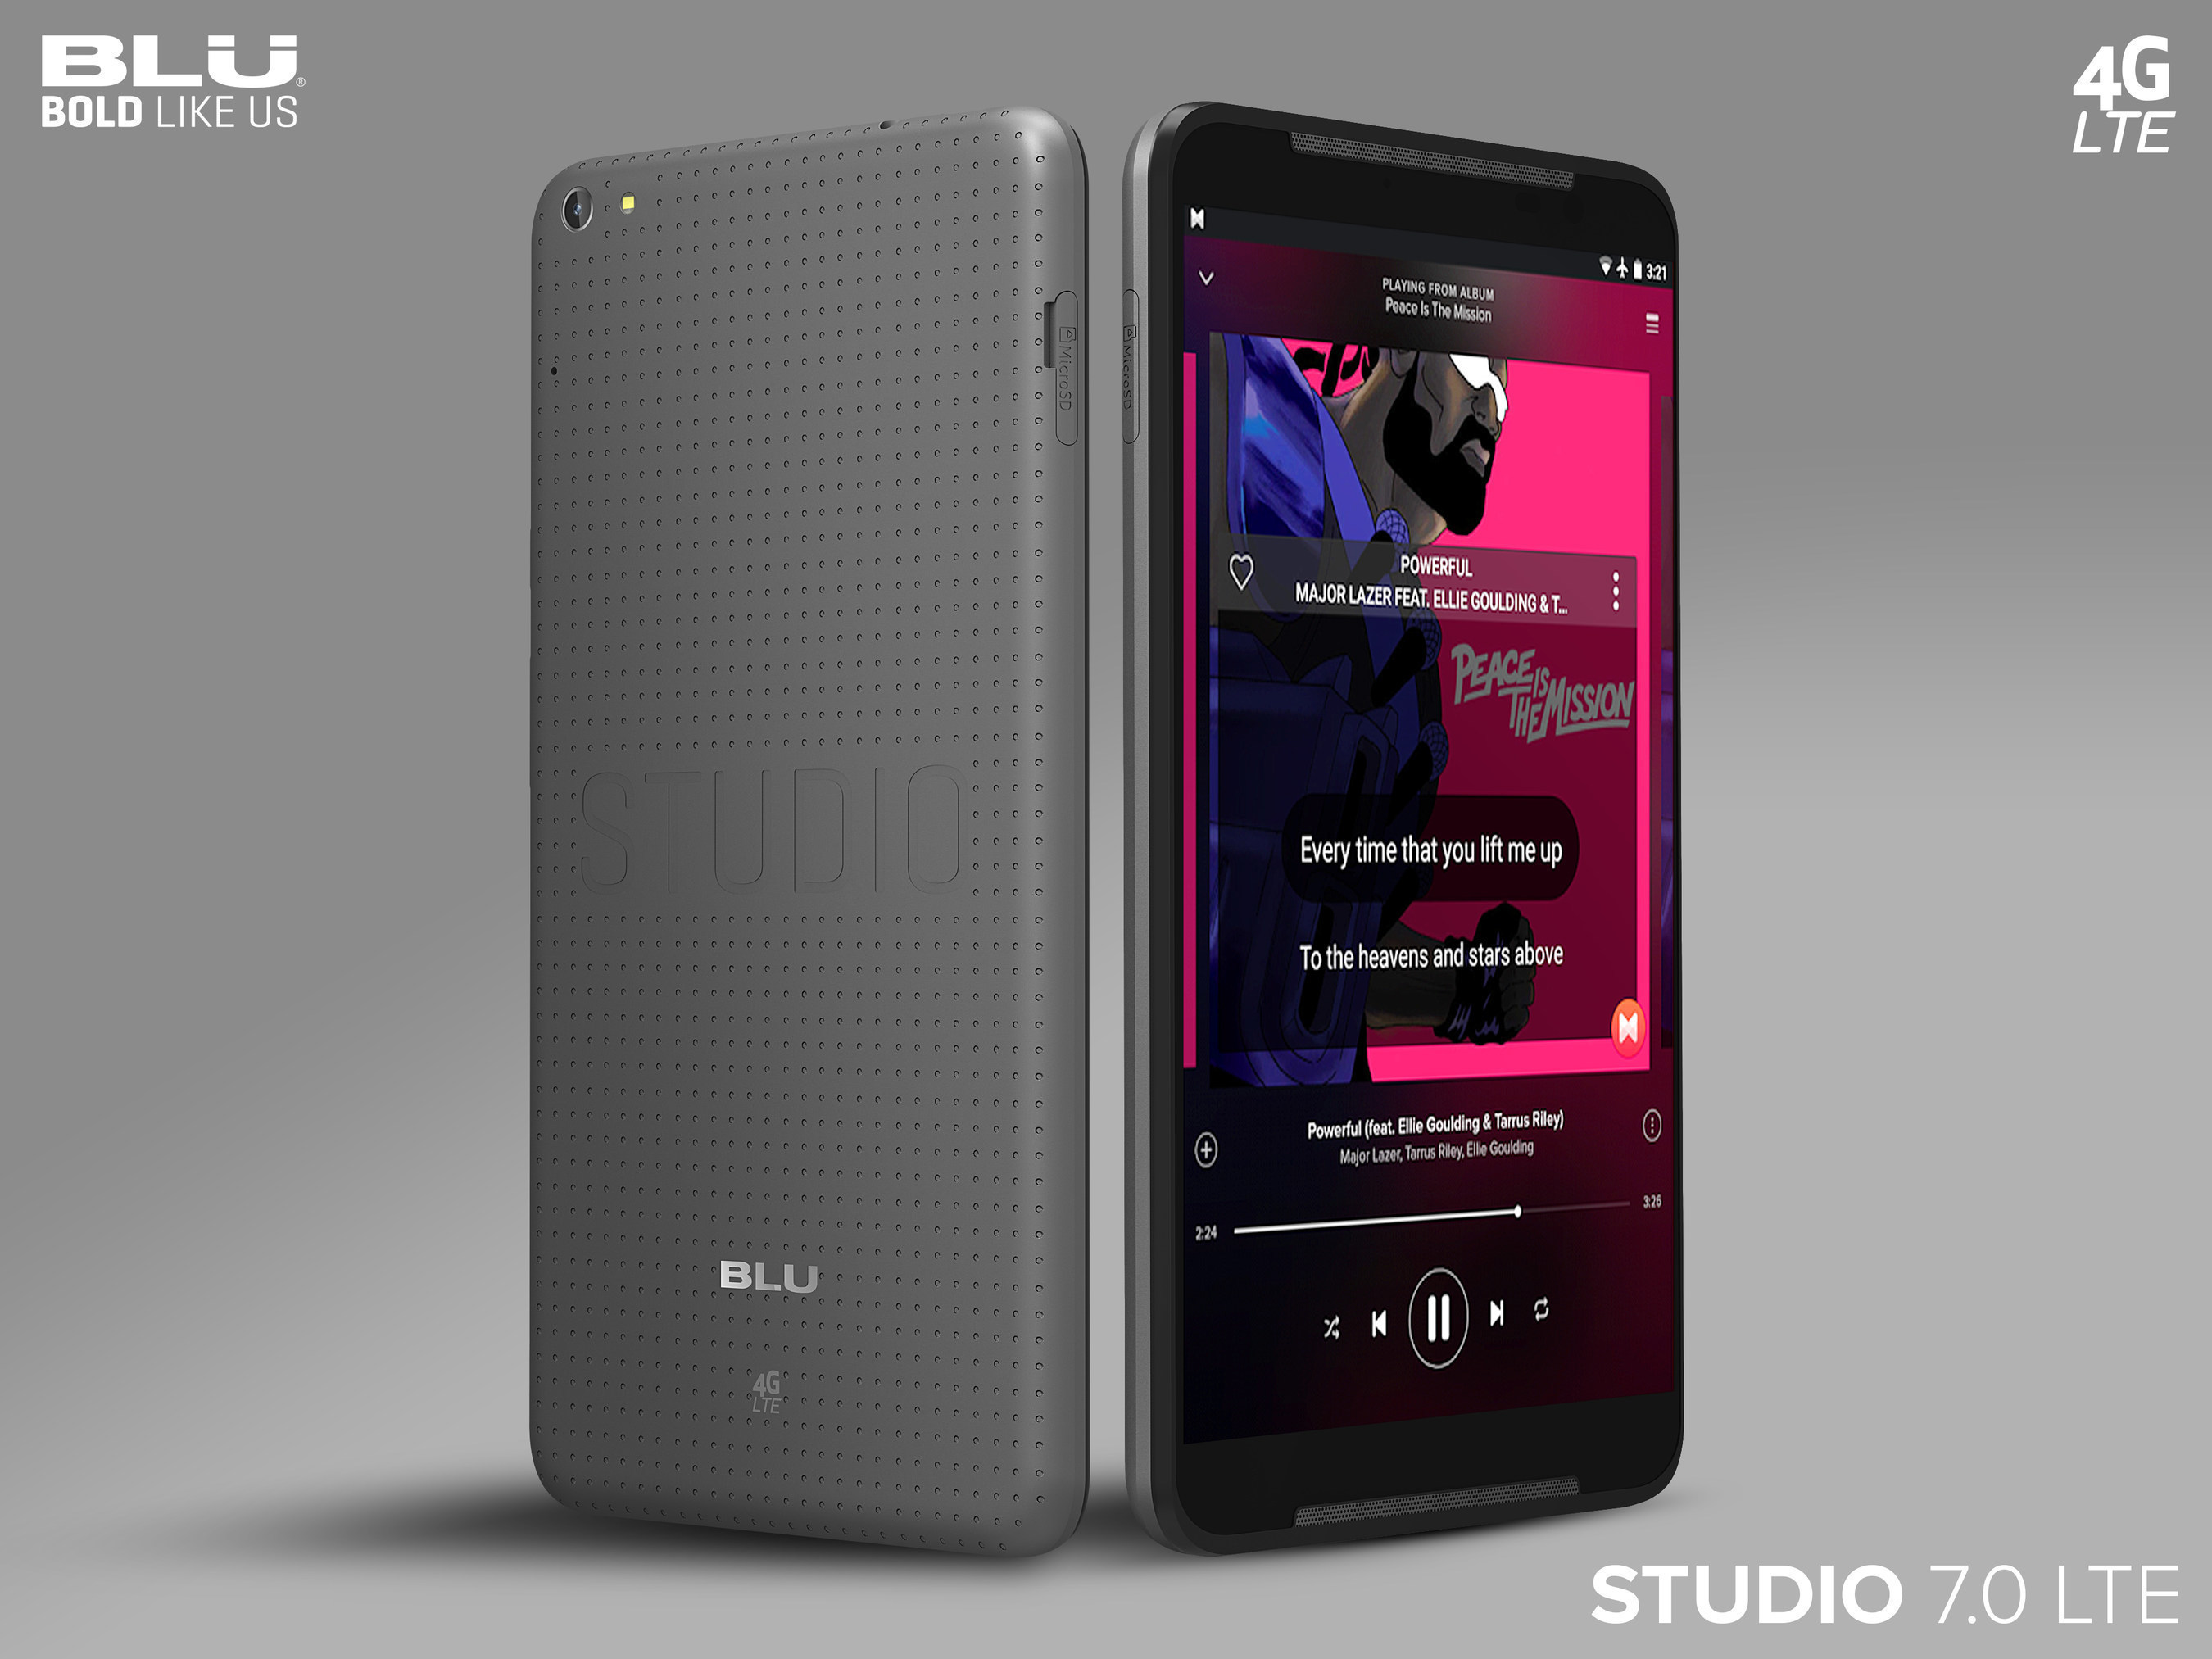 BLU Products Announces Their Latest 7-Inch Phablet, the BLU Studio 7.0 LTE, Making It Easier To Stay Connected